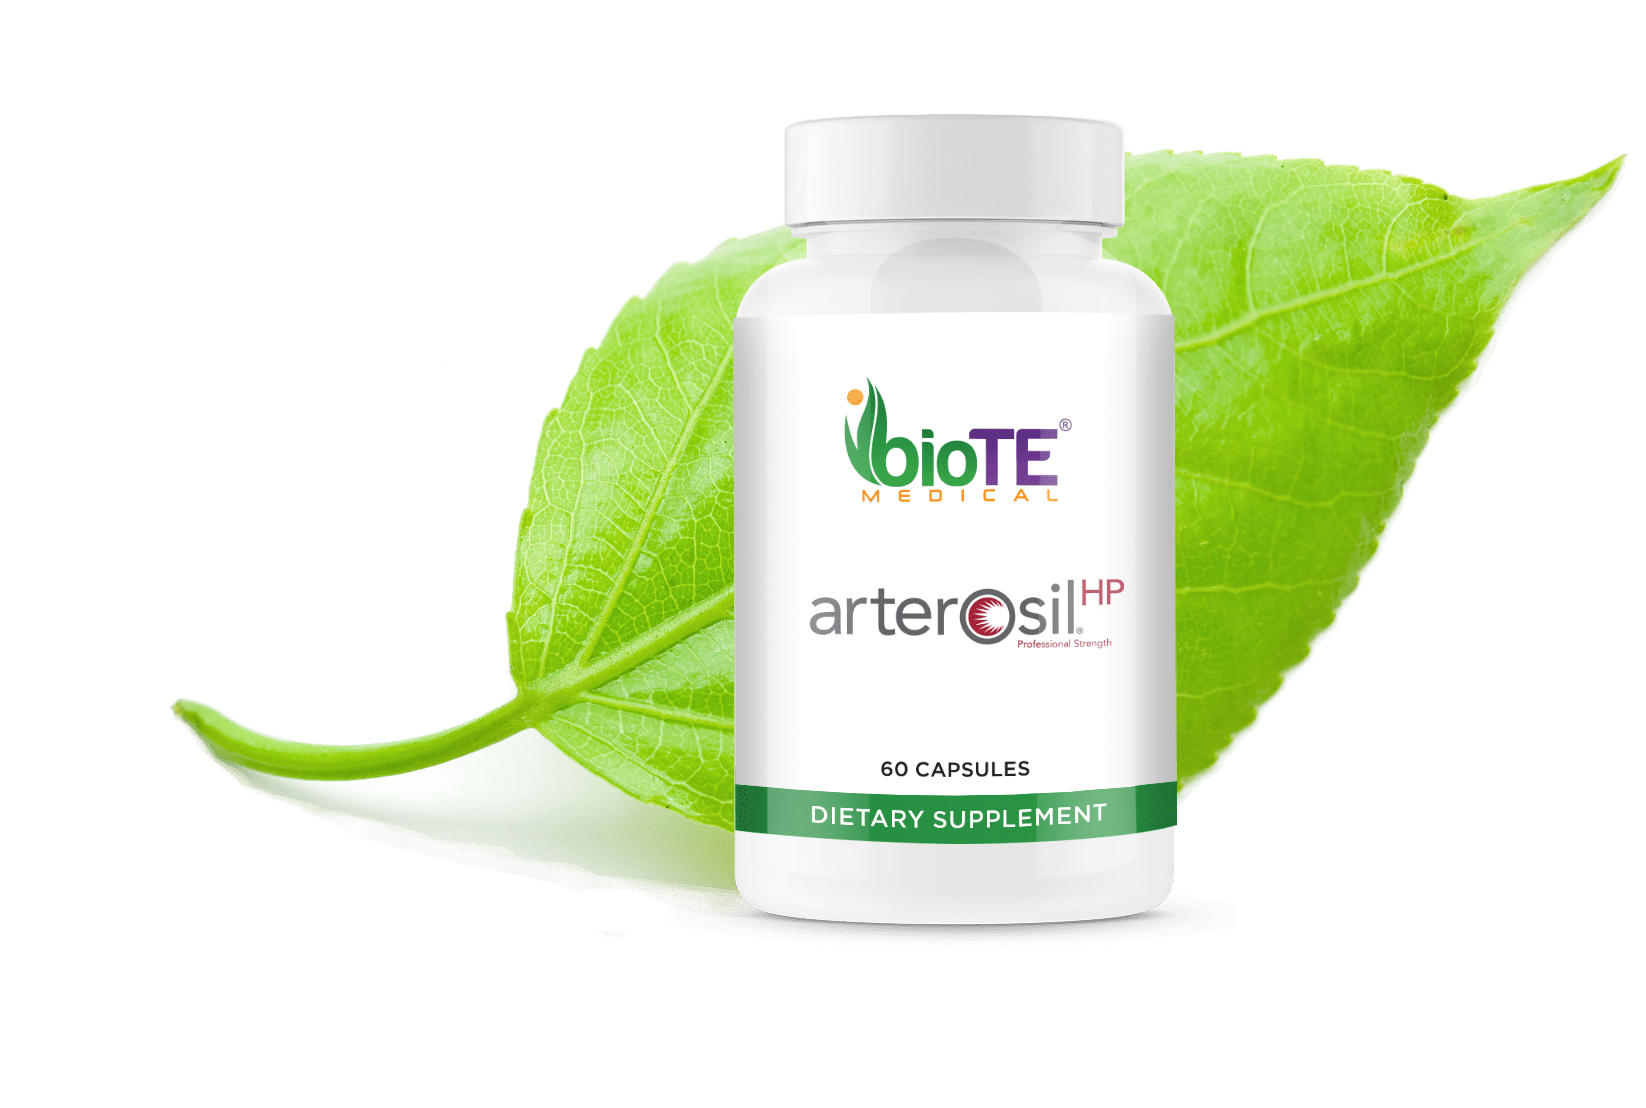 06_Nutraceuticals_DT_Products_Arterosil